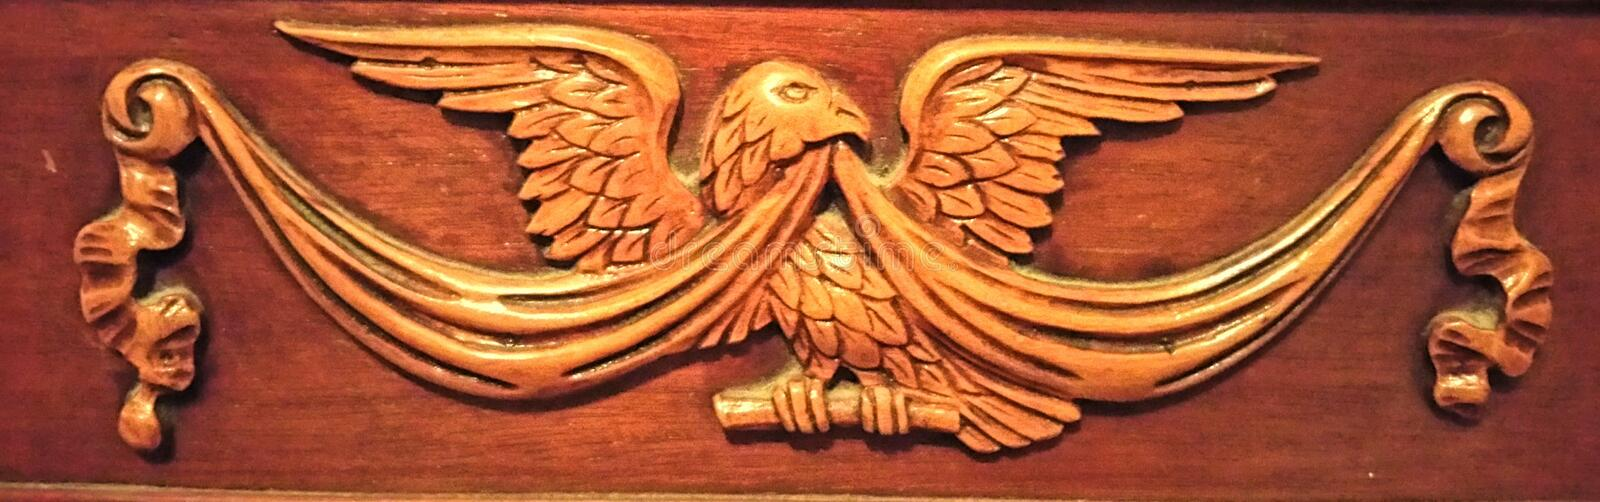 Amerikaans Eagle Carving royalty-vrije stock afbeelding